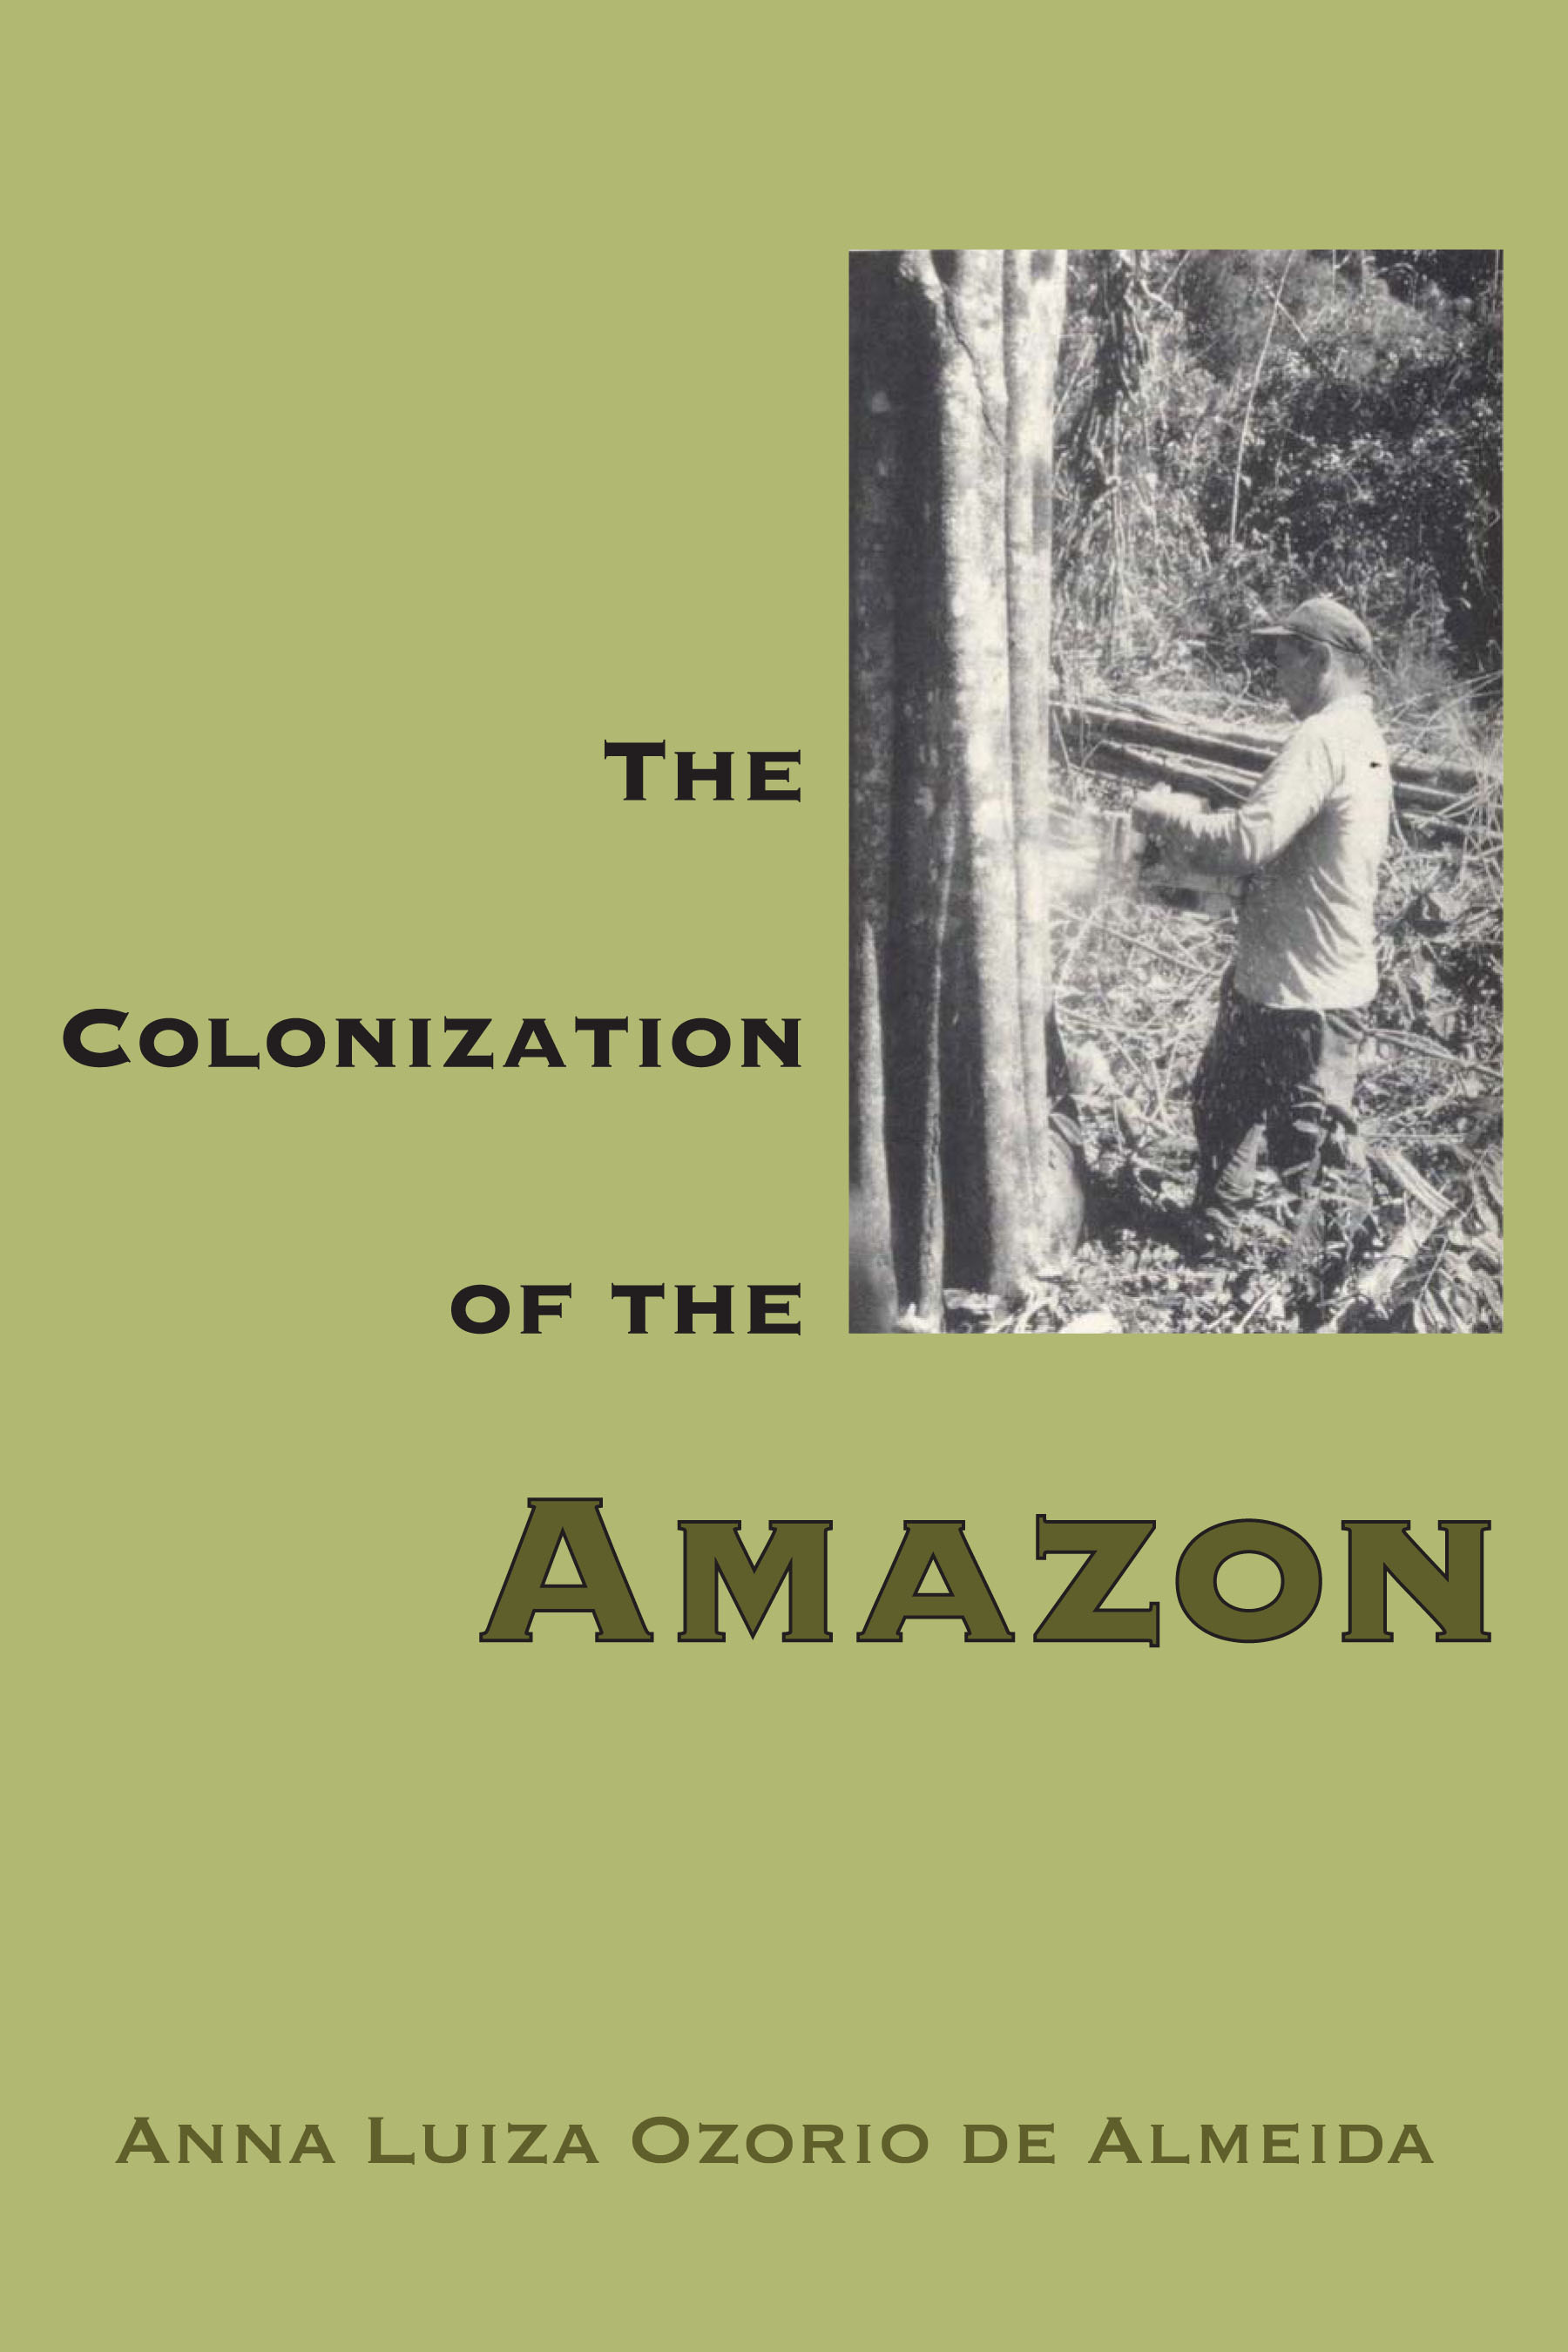 Cover of The Colonization of the Amazon